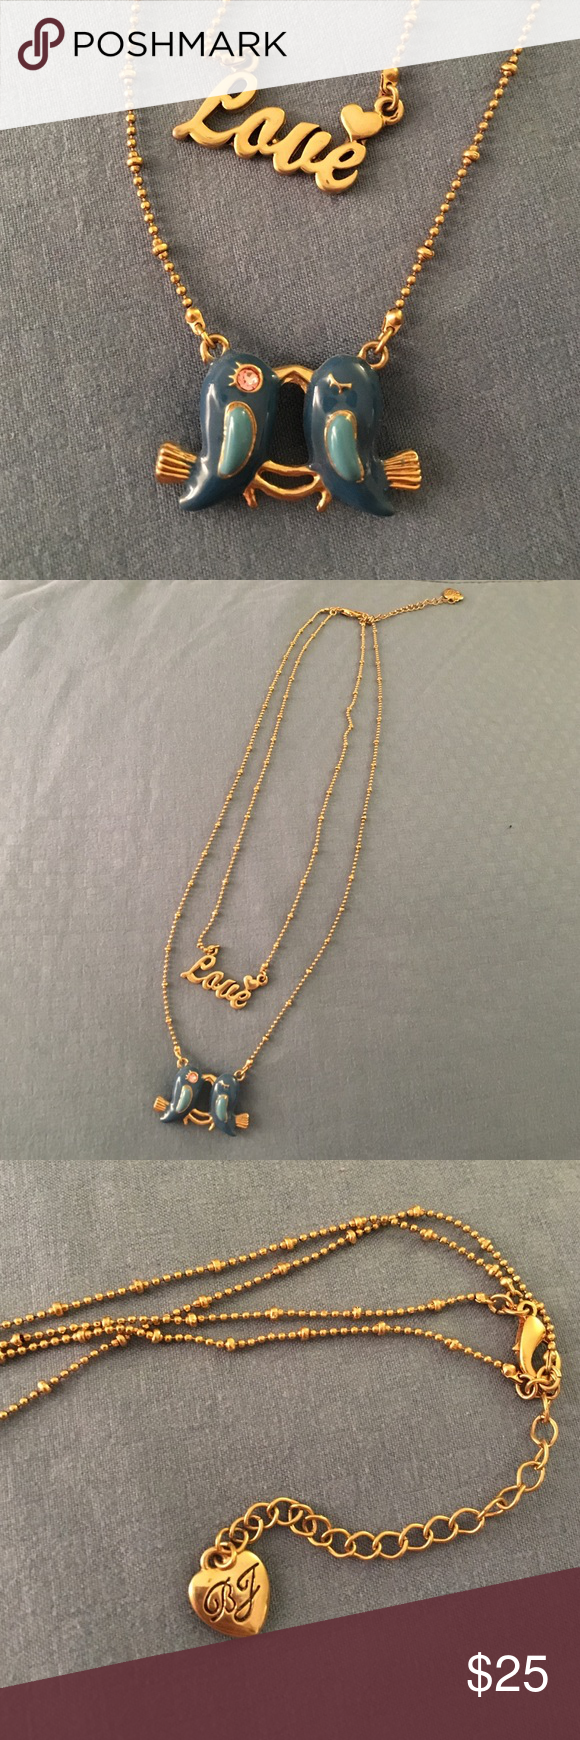 SALE🔸 Betsey Johnson necklace (With images) | Betsey ...